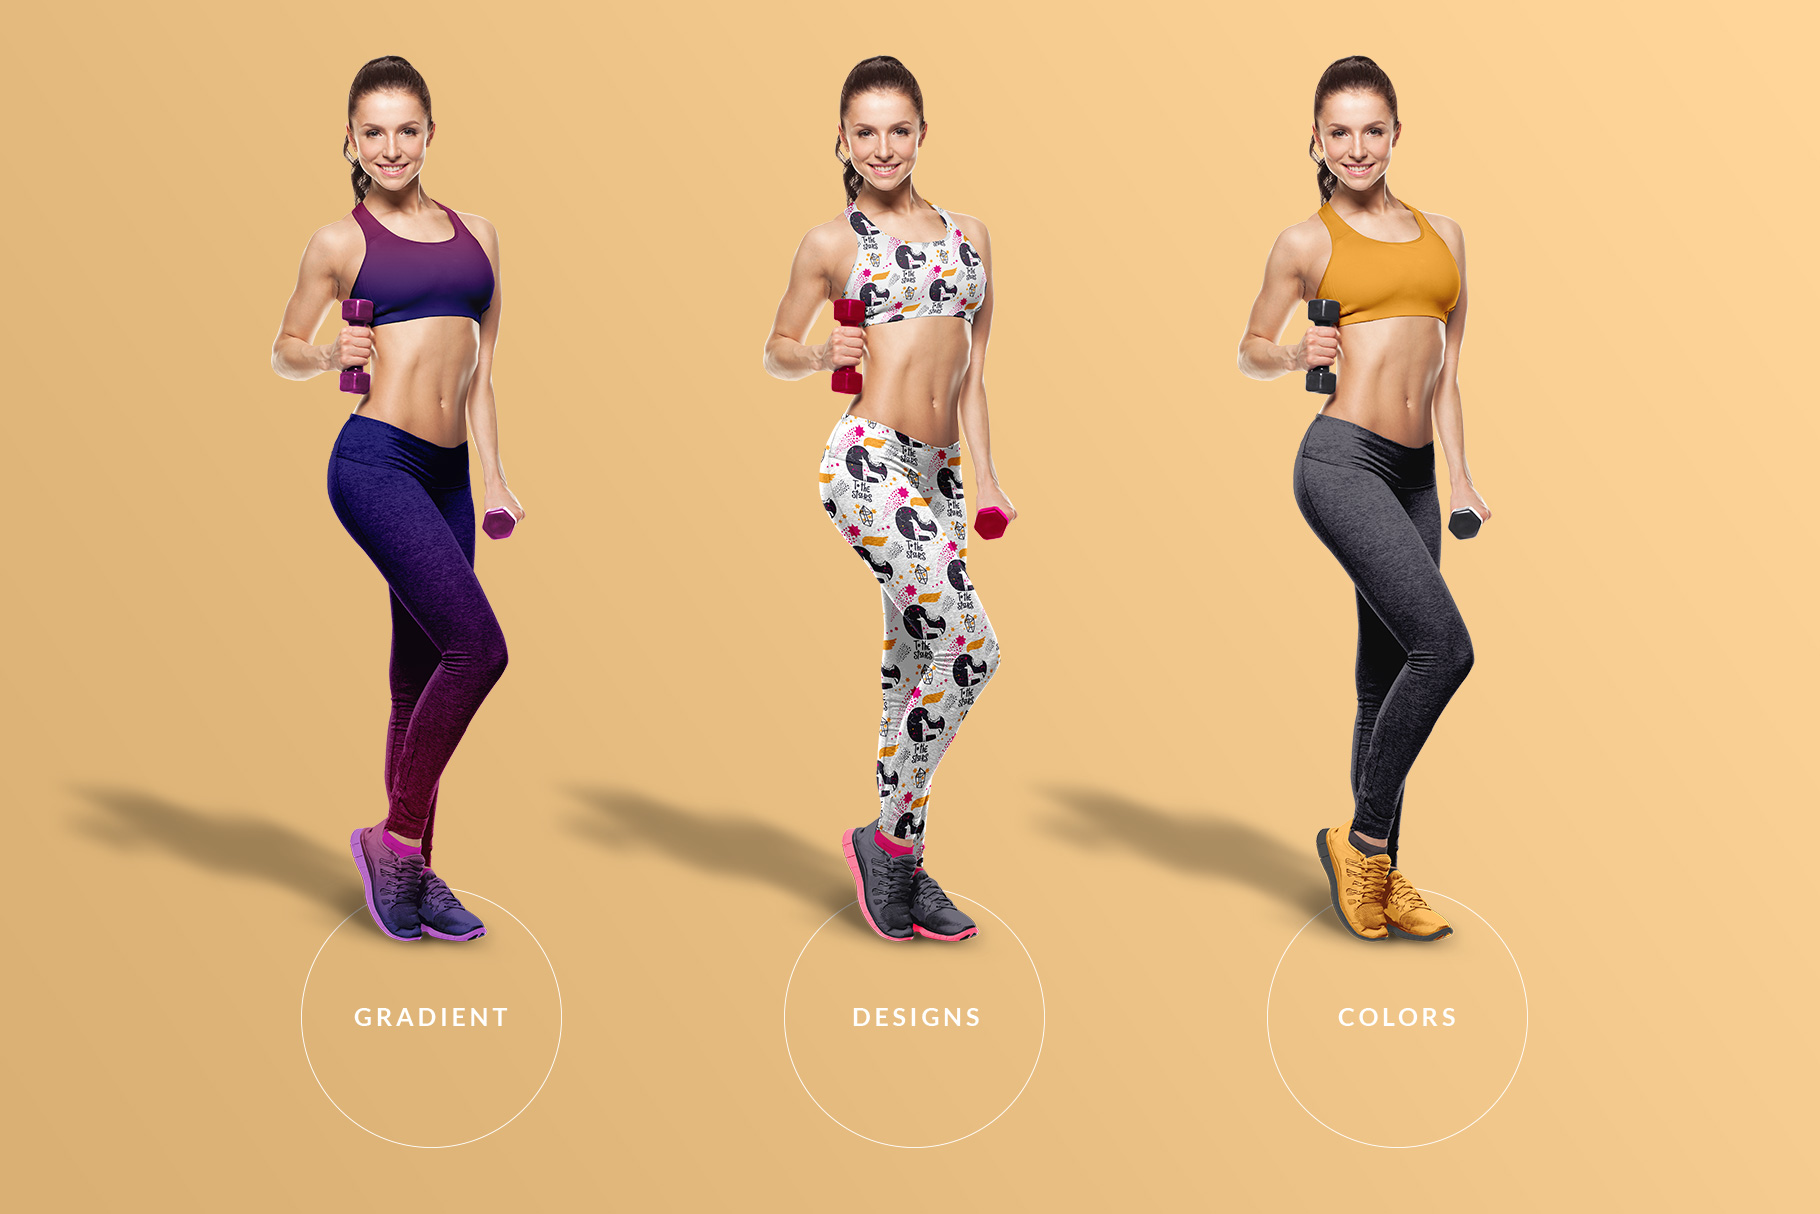 types of the female fitness outfit mockup